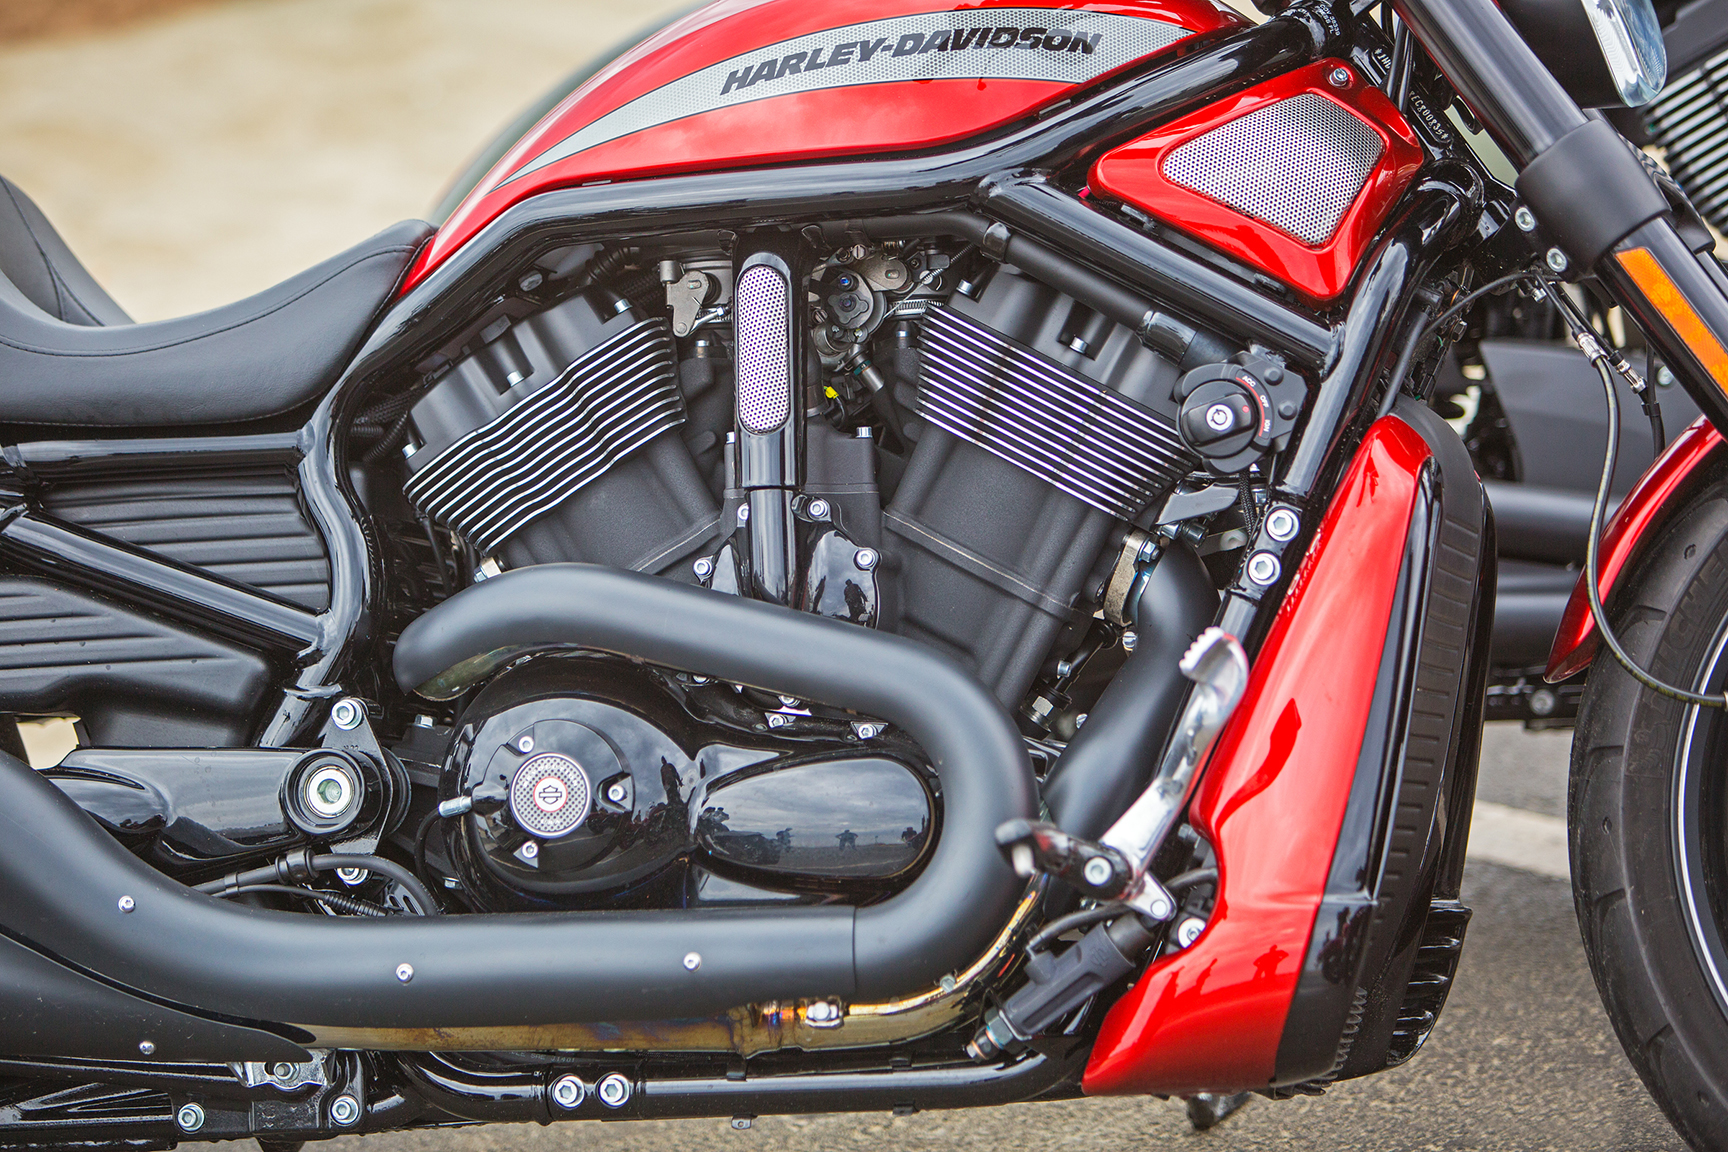 2015 Harley Davidson Night Rod Special Review Motorcyclecom